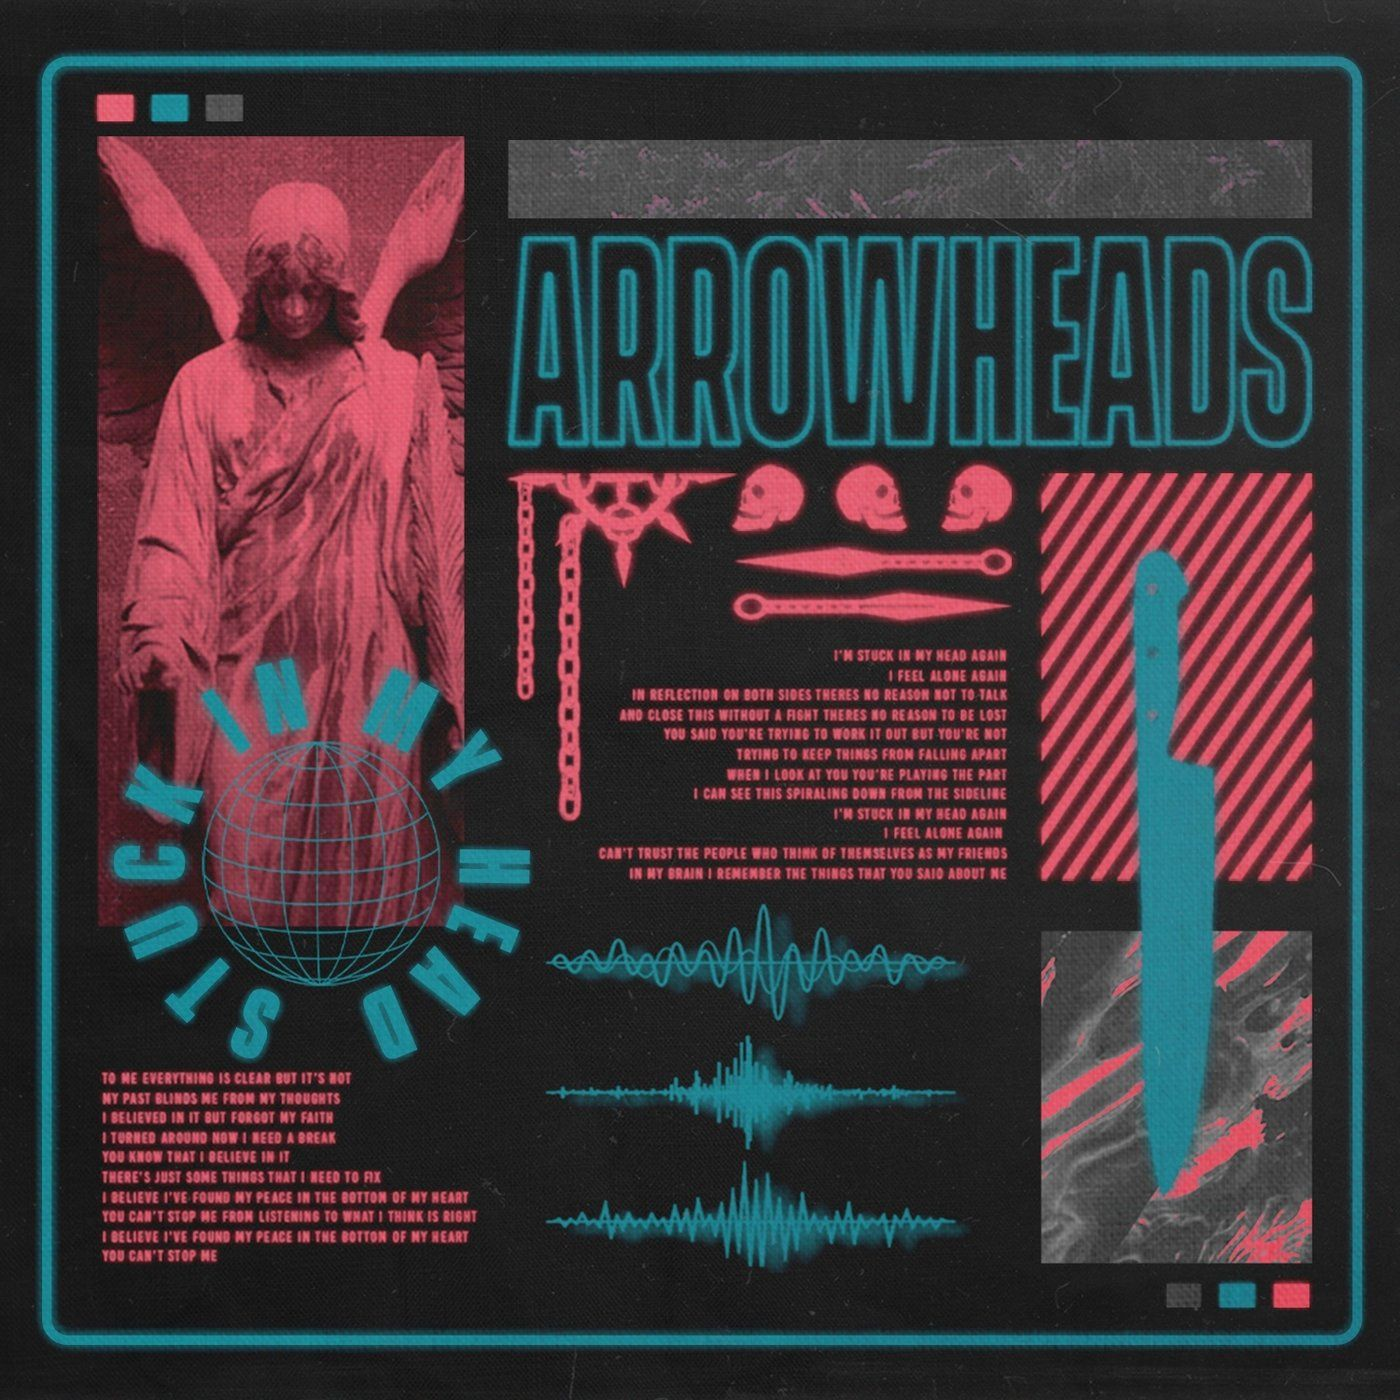 Arrowheads - Stuck in My Heads [single] (2020)